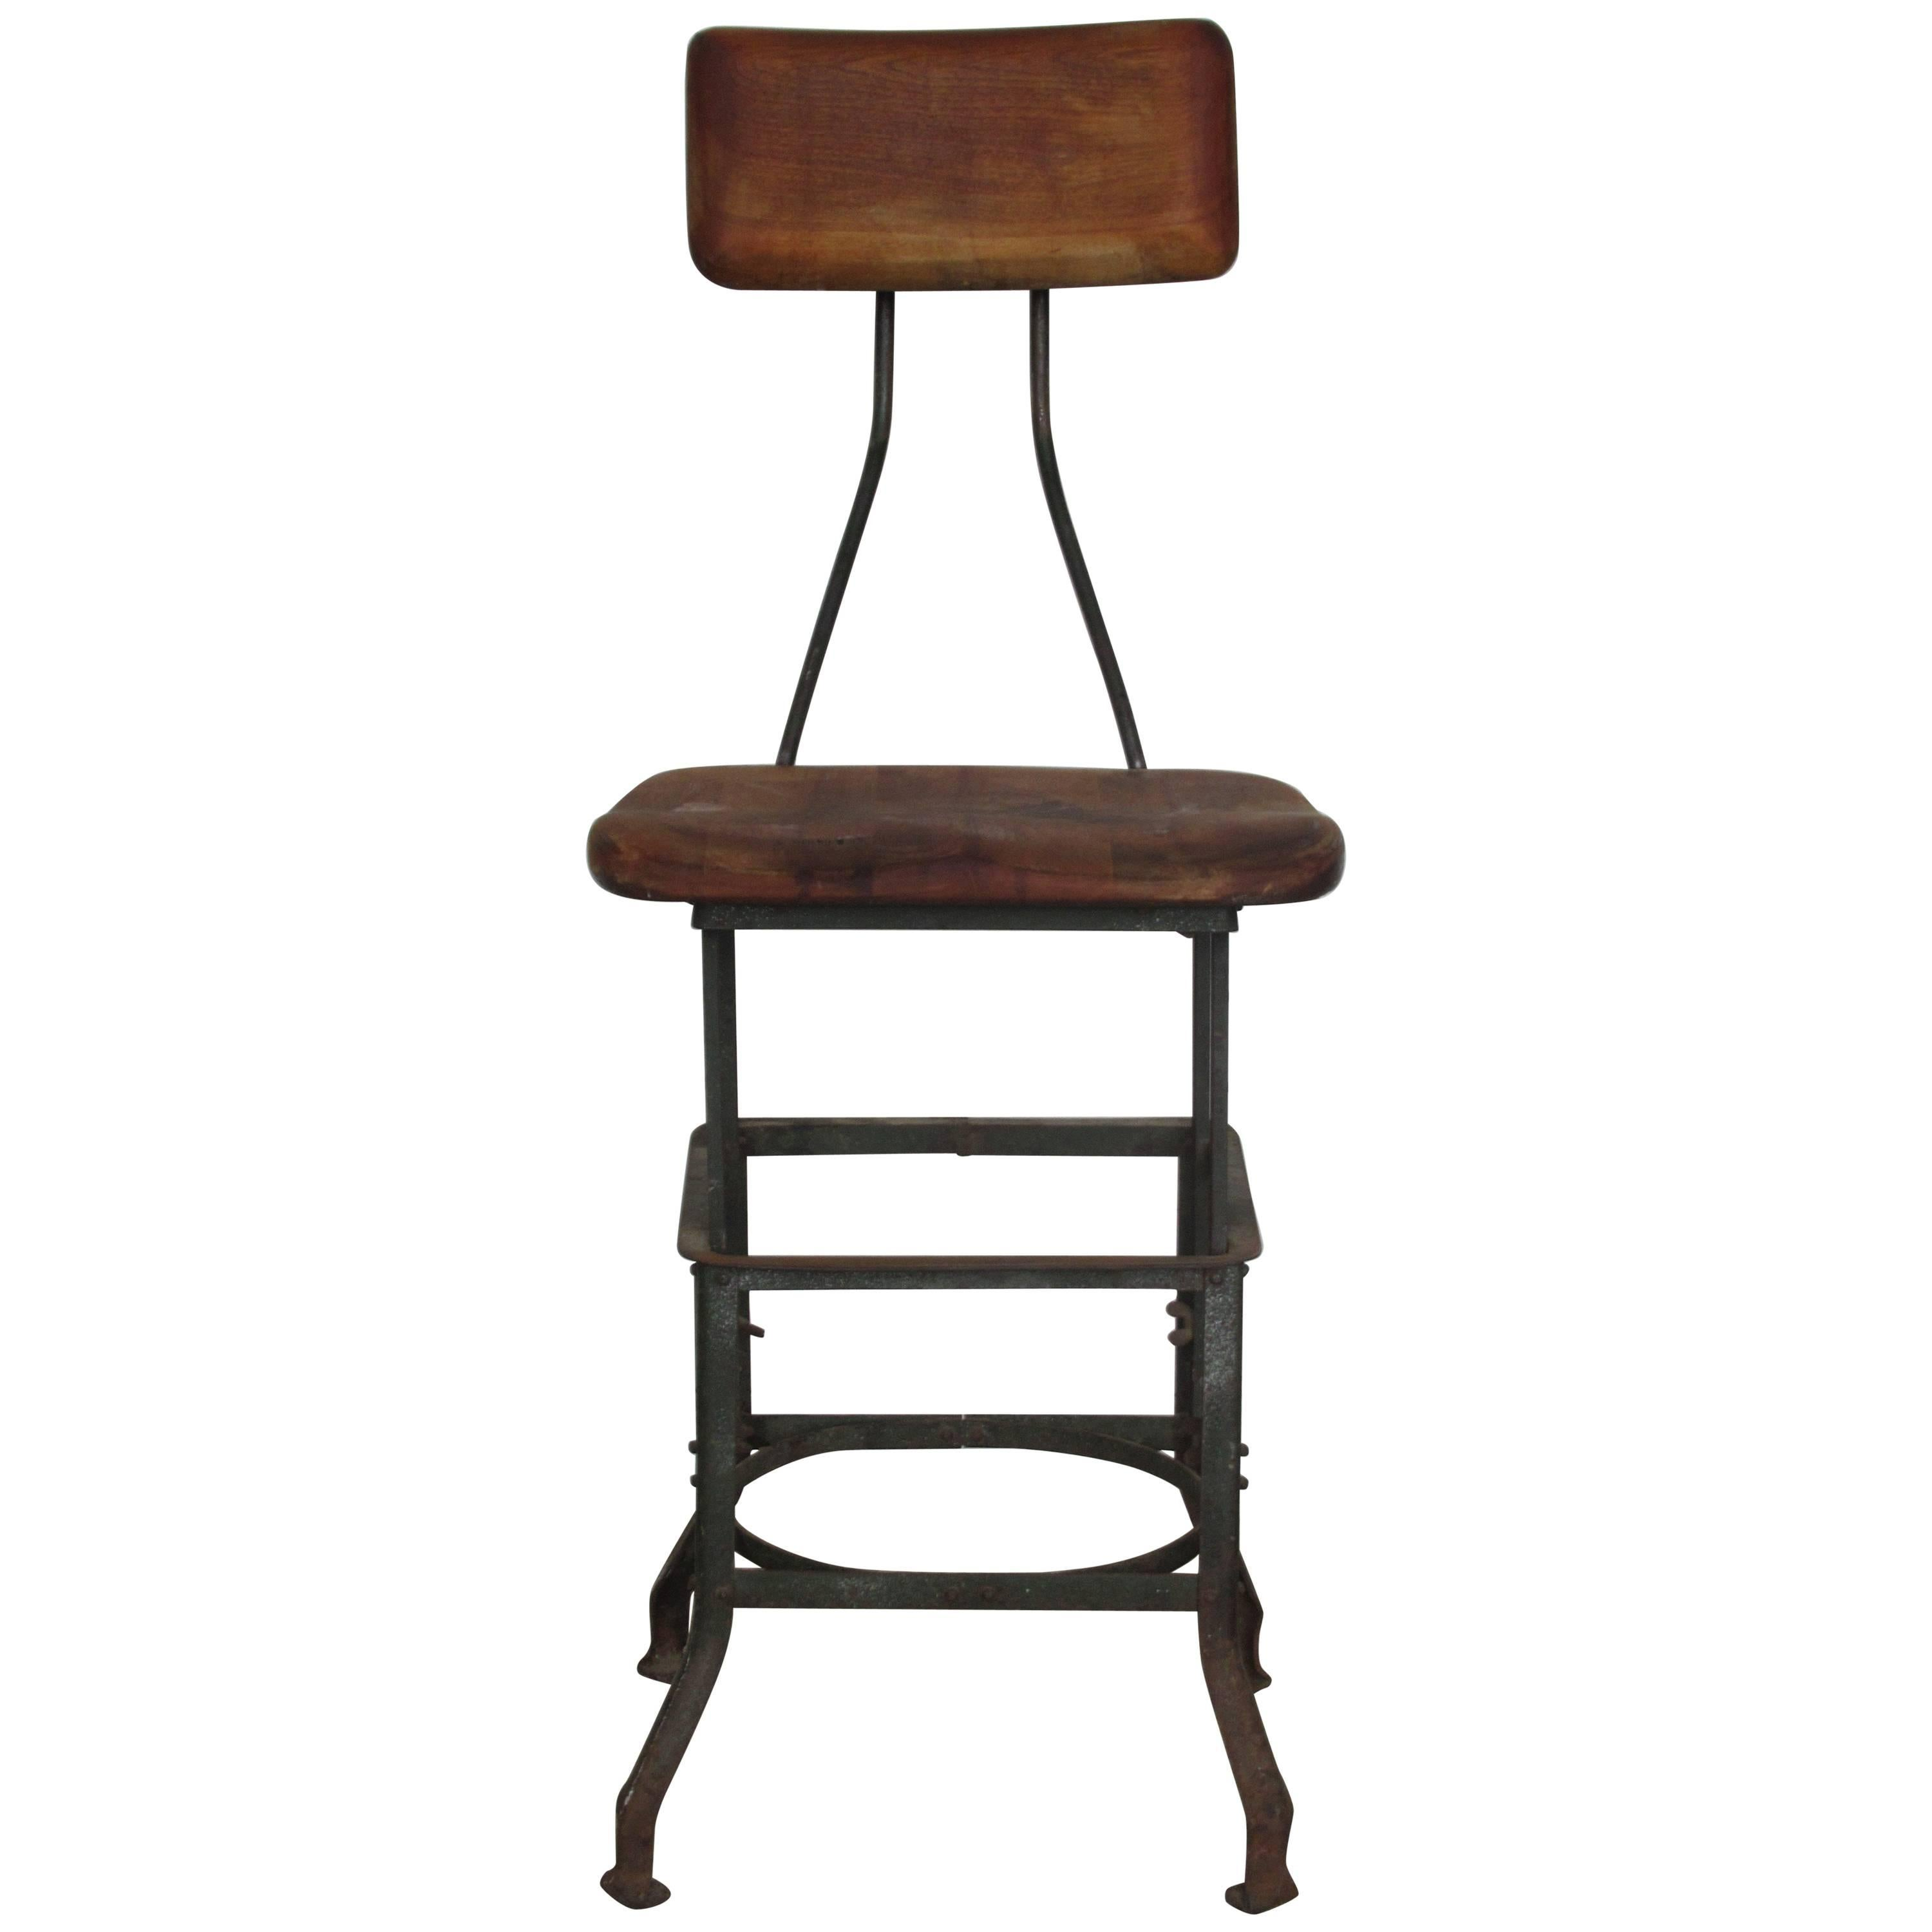 Antique Industrial Task Chair Stool 1